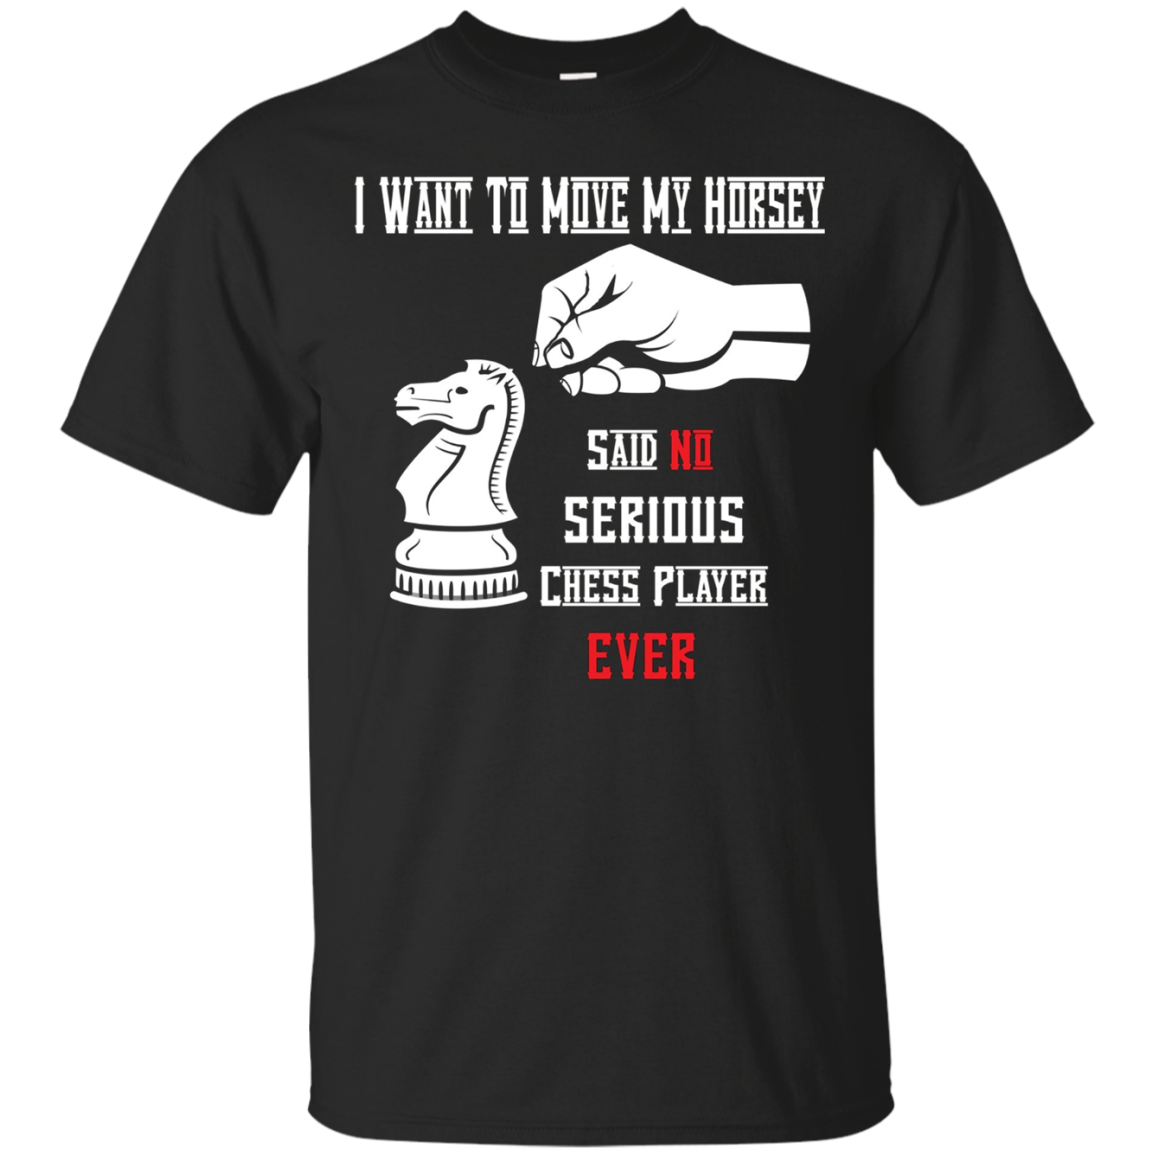 Sarcastic Funny Chess T-Shirt